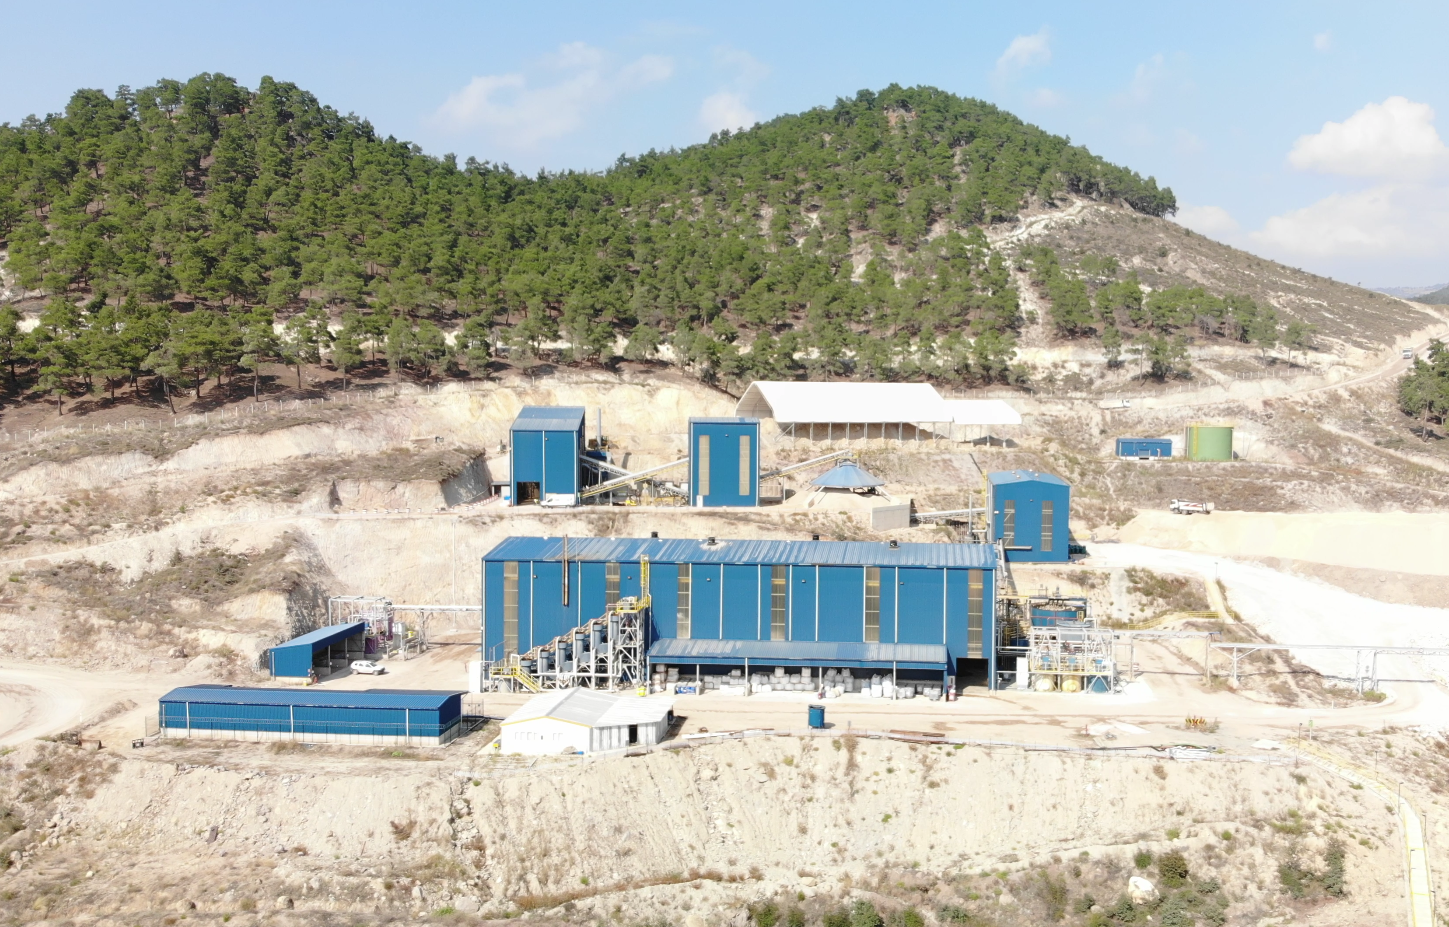 Ariana Resources - Highlights from the Kiziltepe Gold and Silver Mine